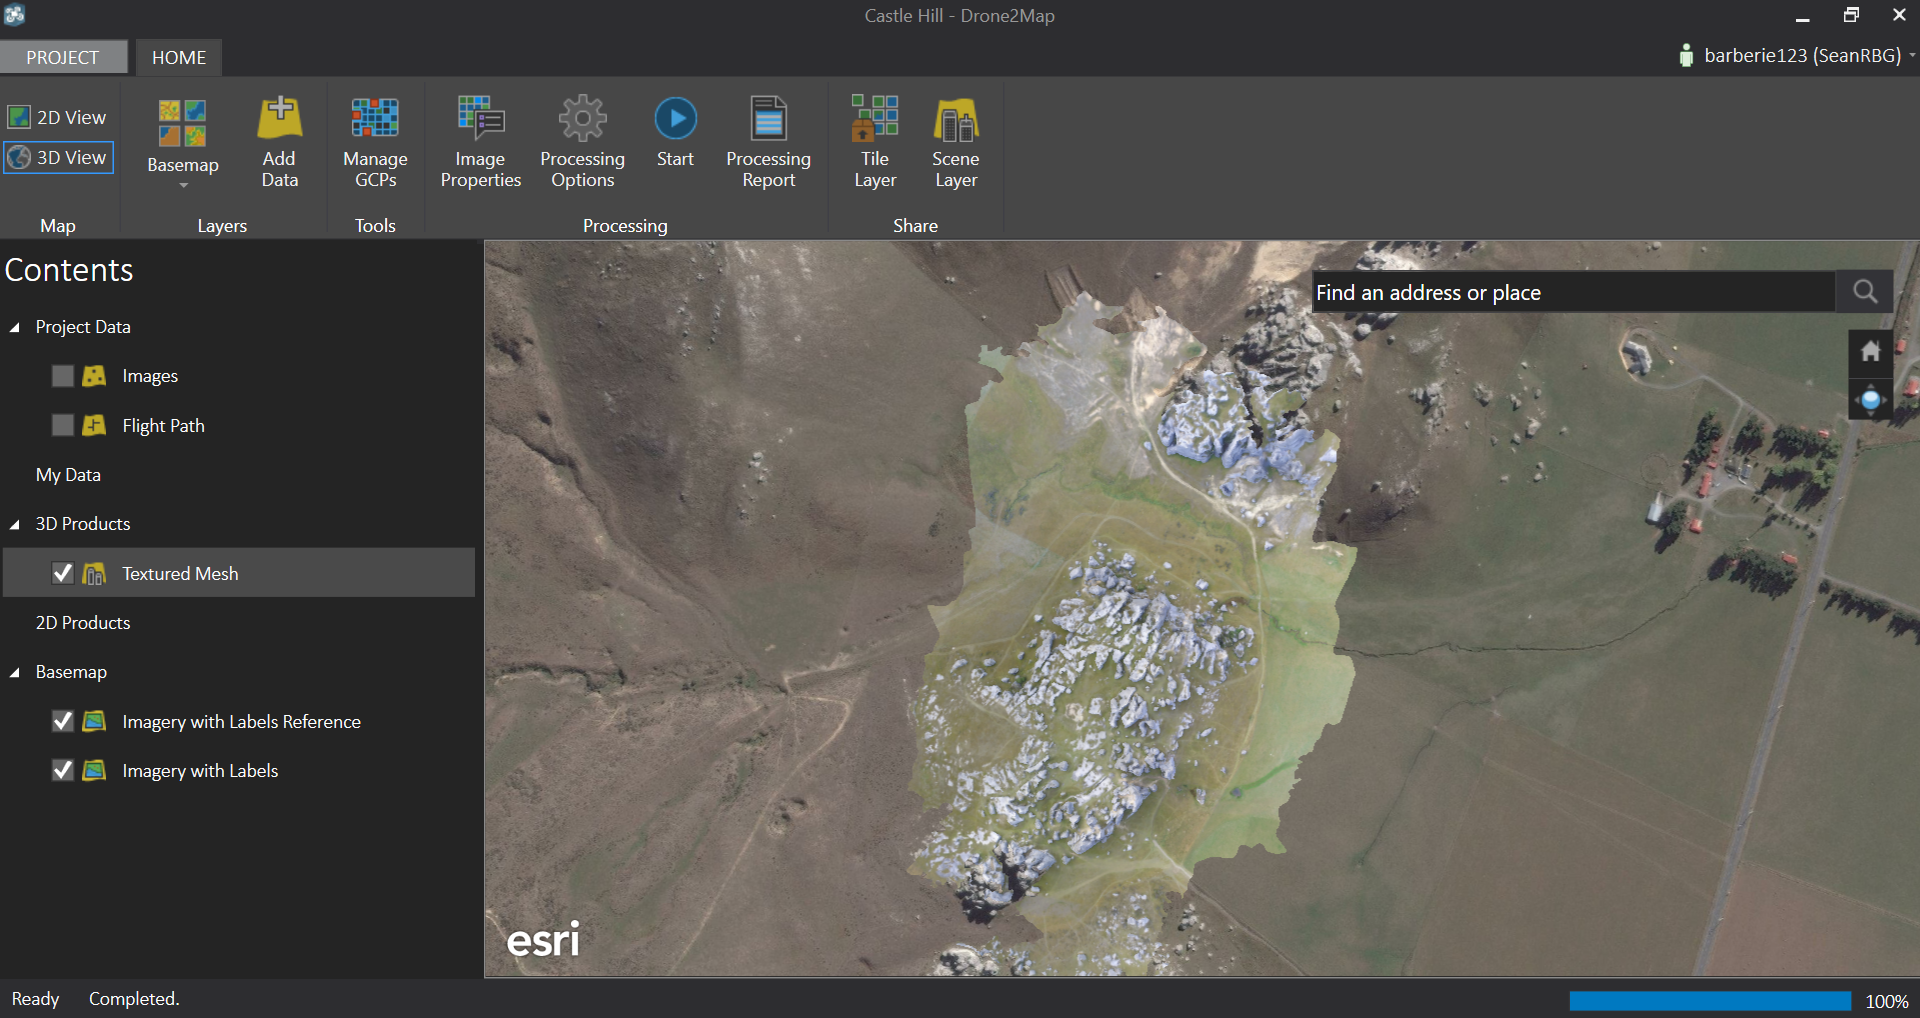 esri drone2map with basemap